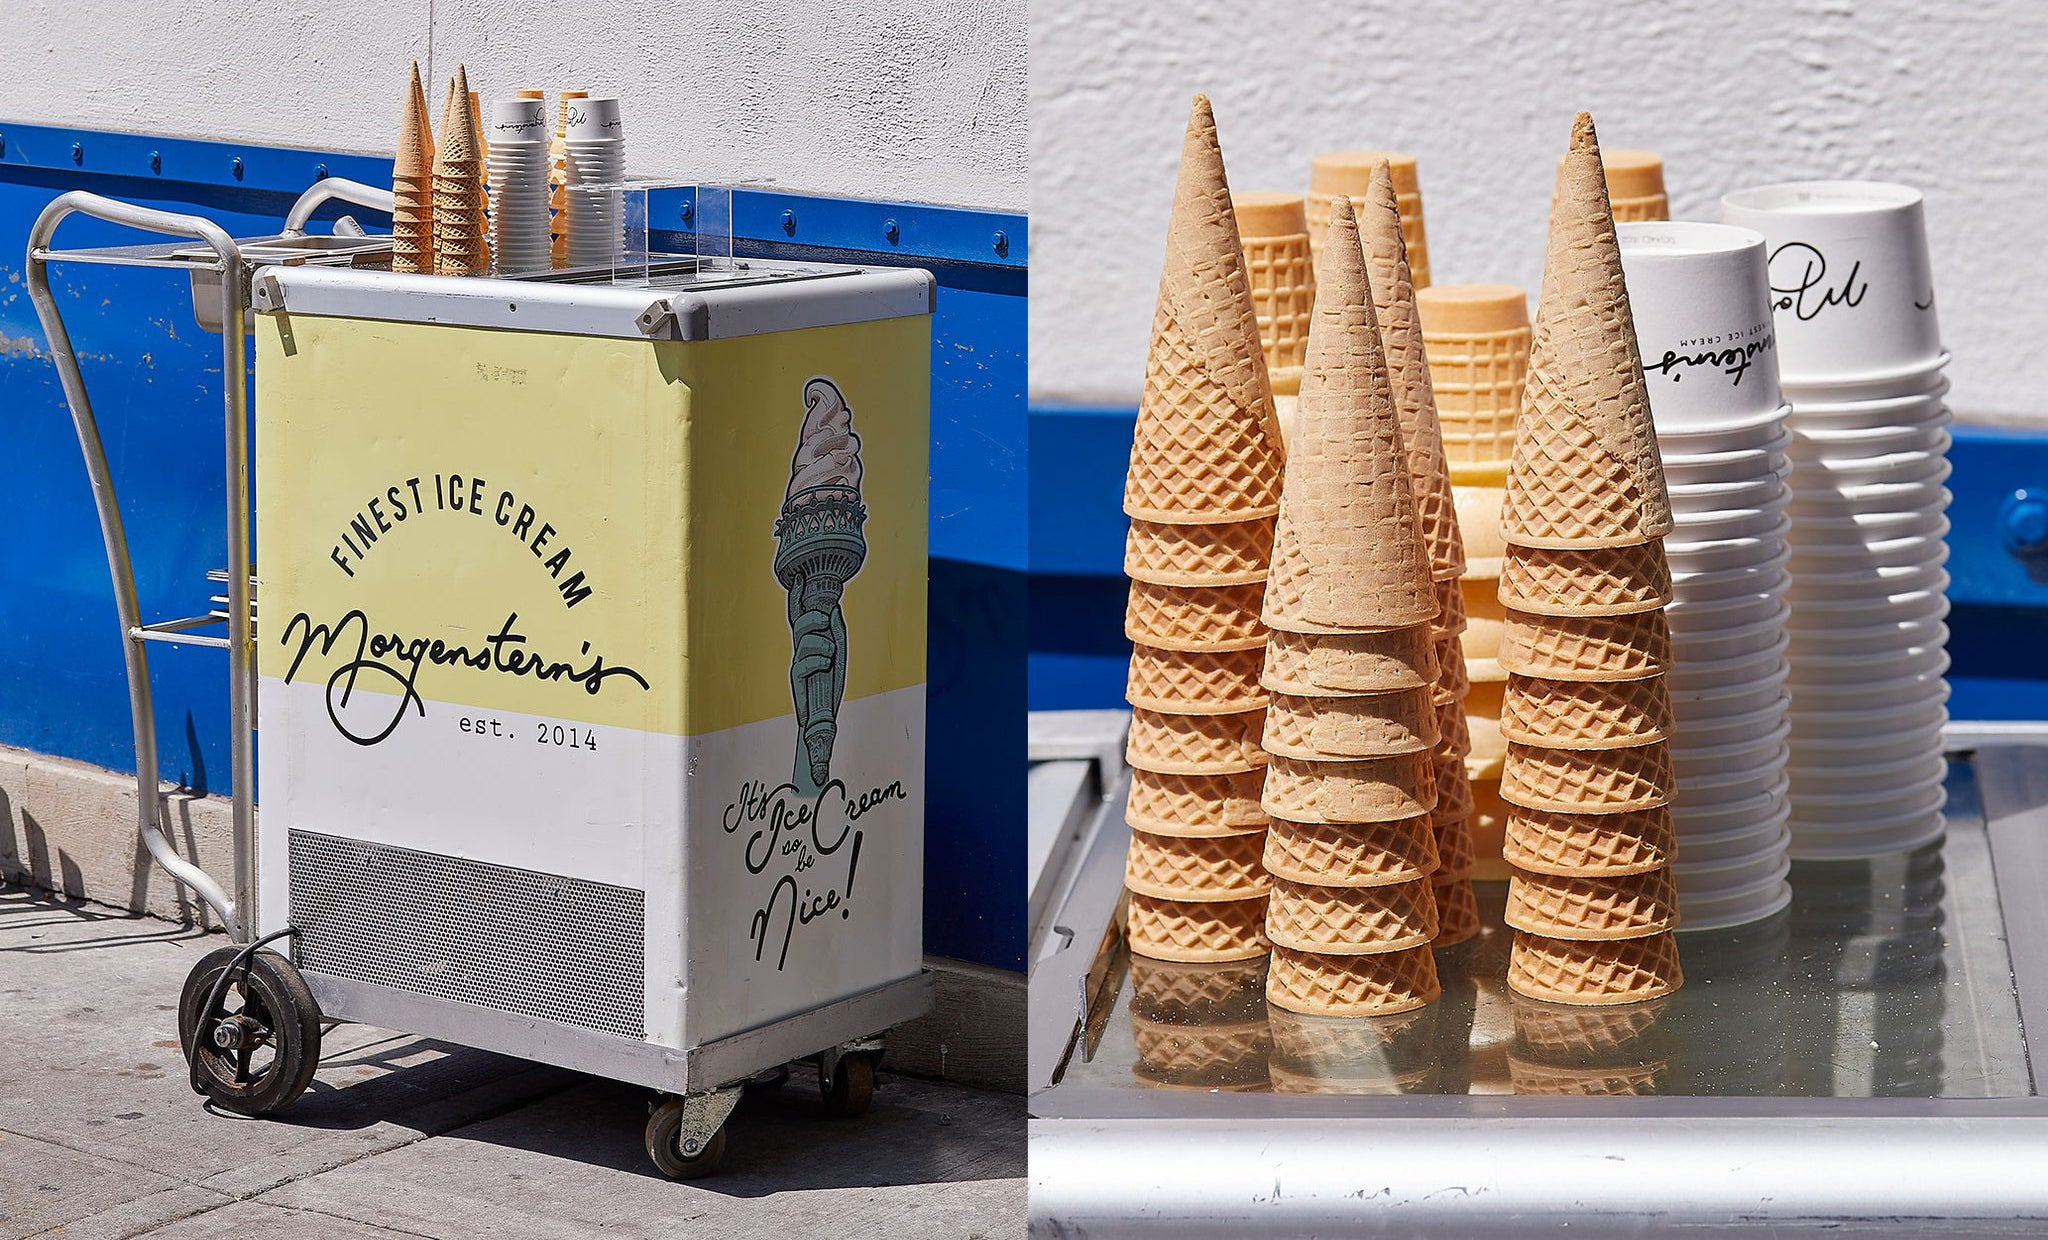 Morgenstern's Offsite Cart and Cones